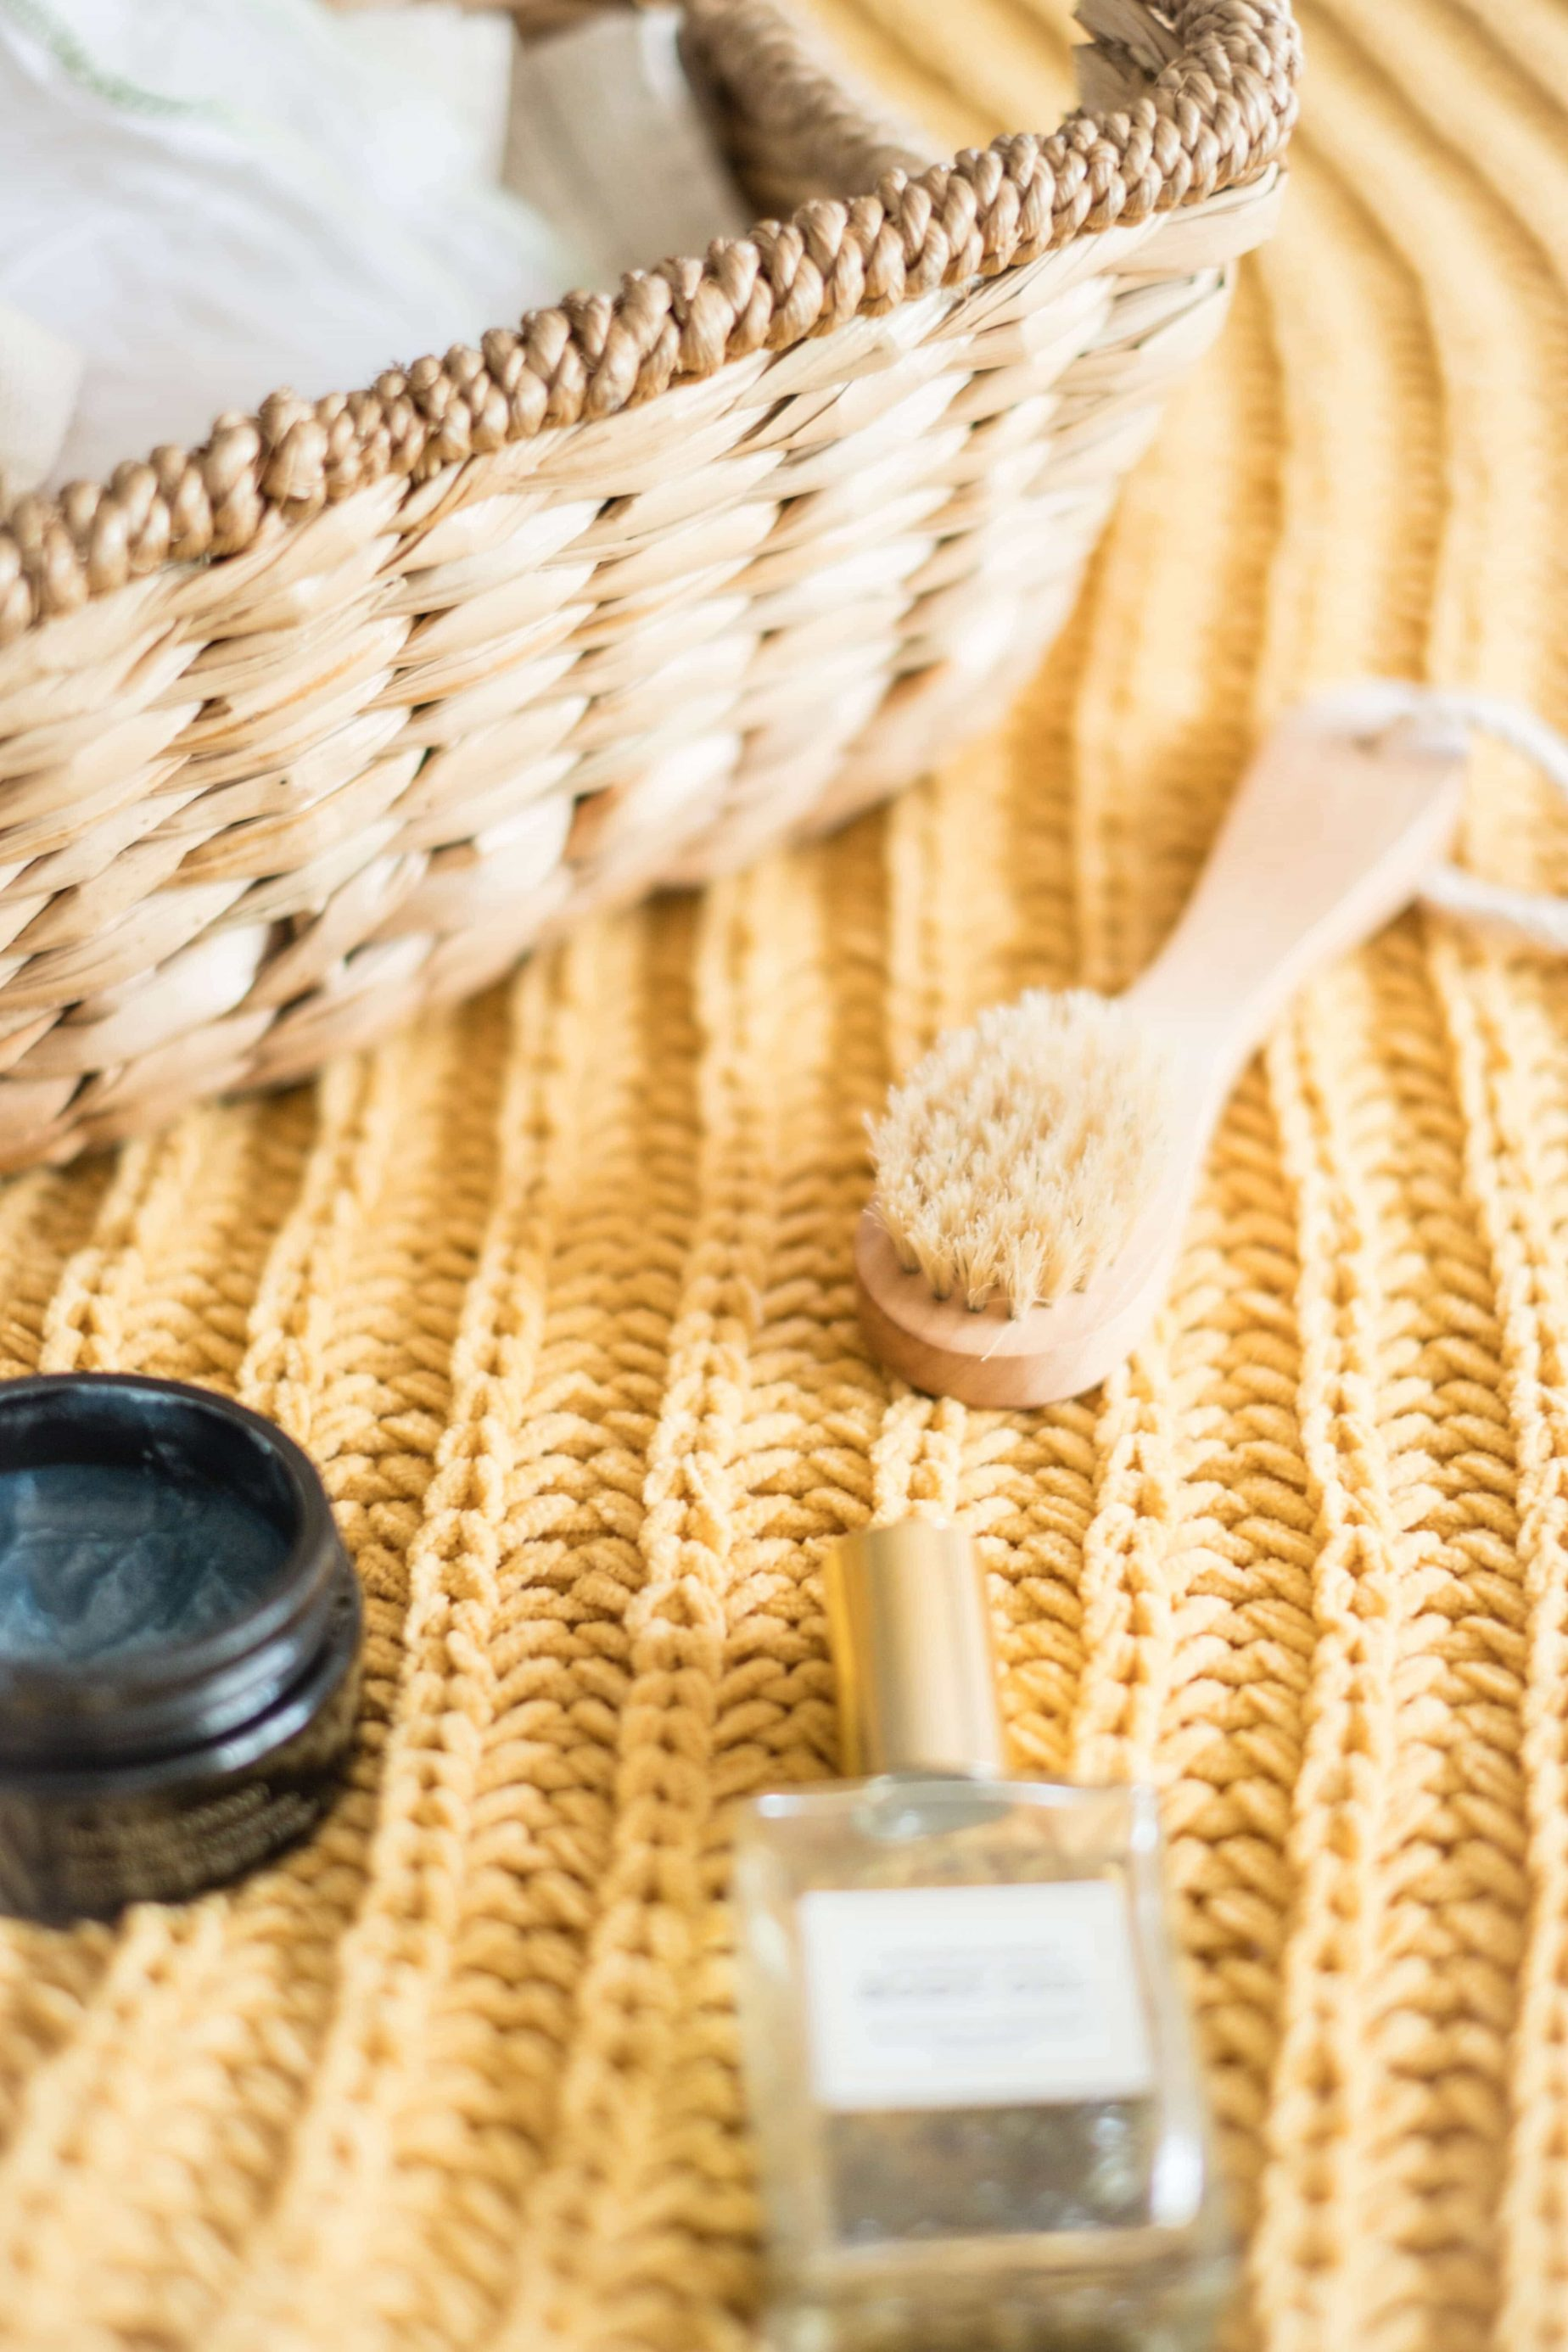 Why You Should Be Dry Brushing Your Skin #whatsavvysaid #ontheblog #wellness #healthyhabits #drybrushing #exfoliate #drybrush #wellnesstips #showerroutine #bodyoil #bodybrush